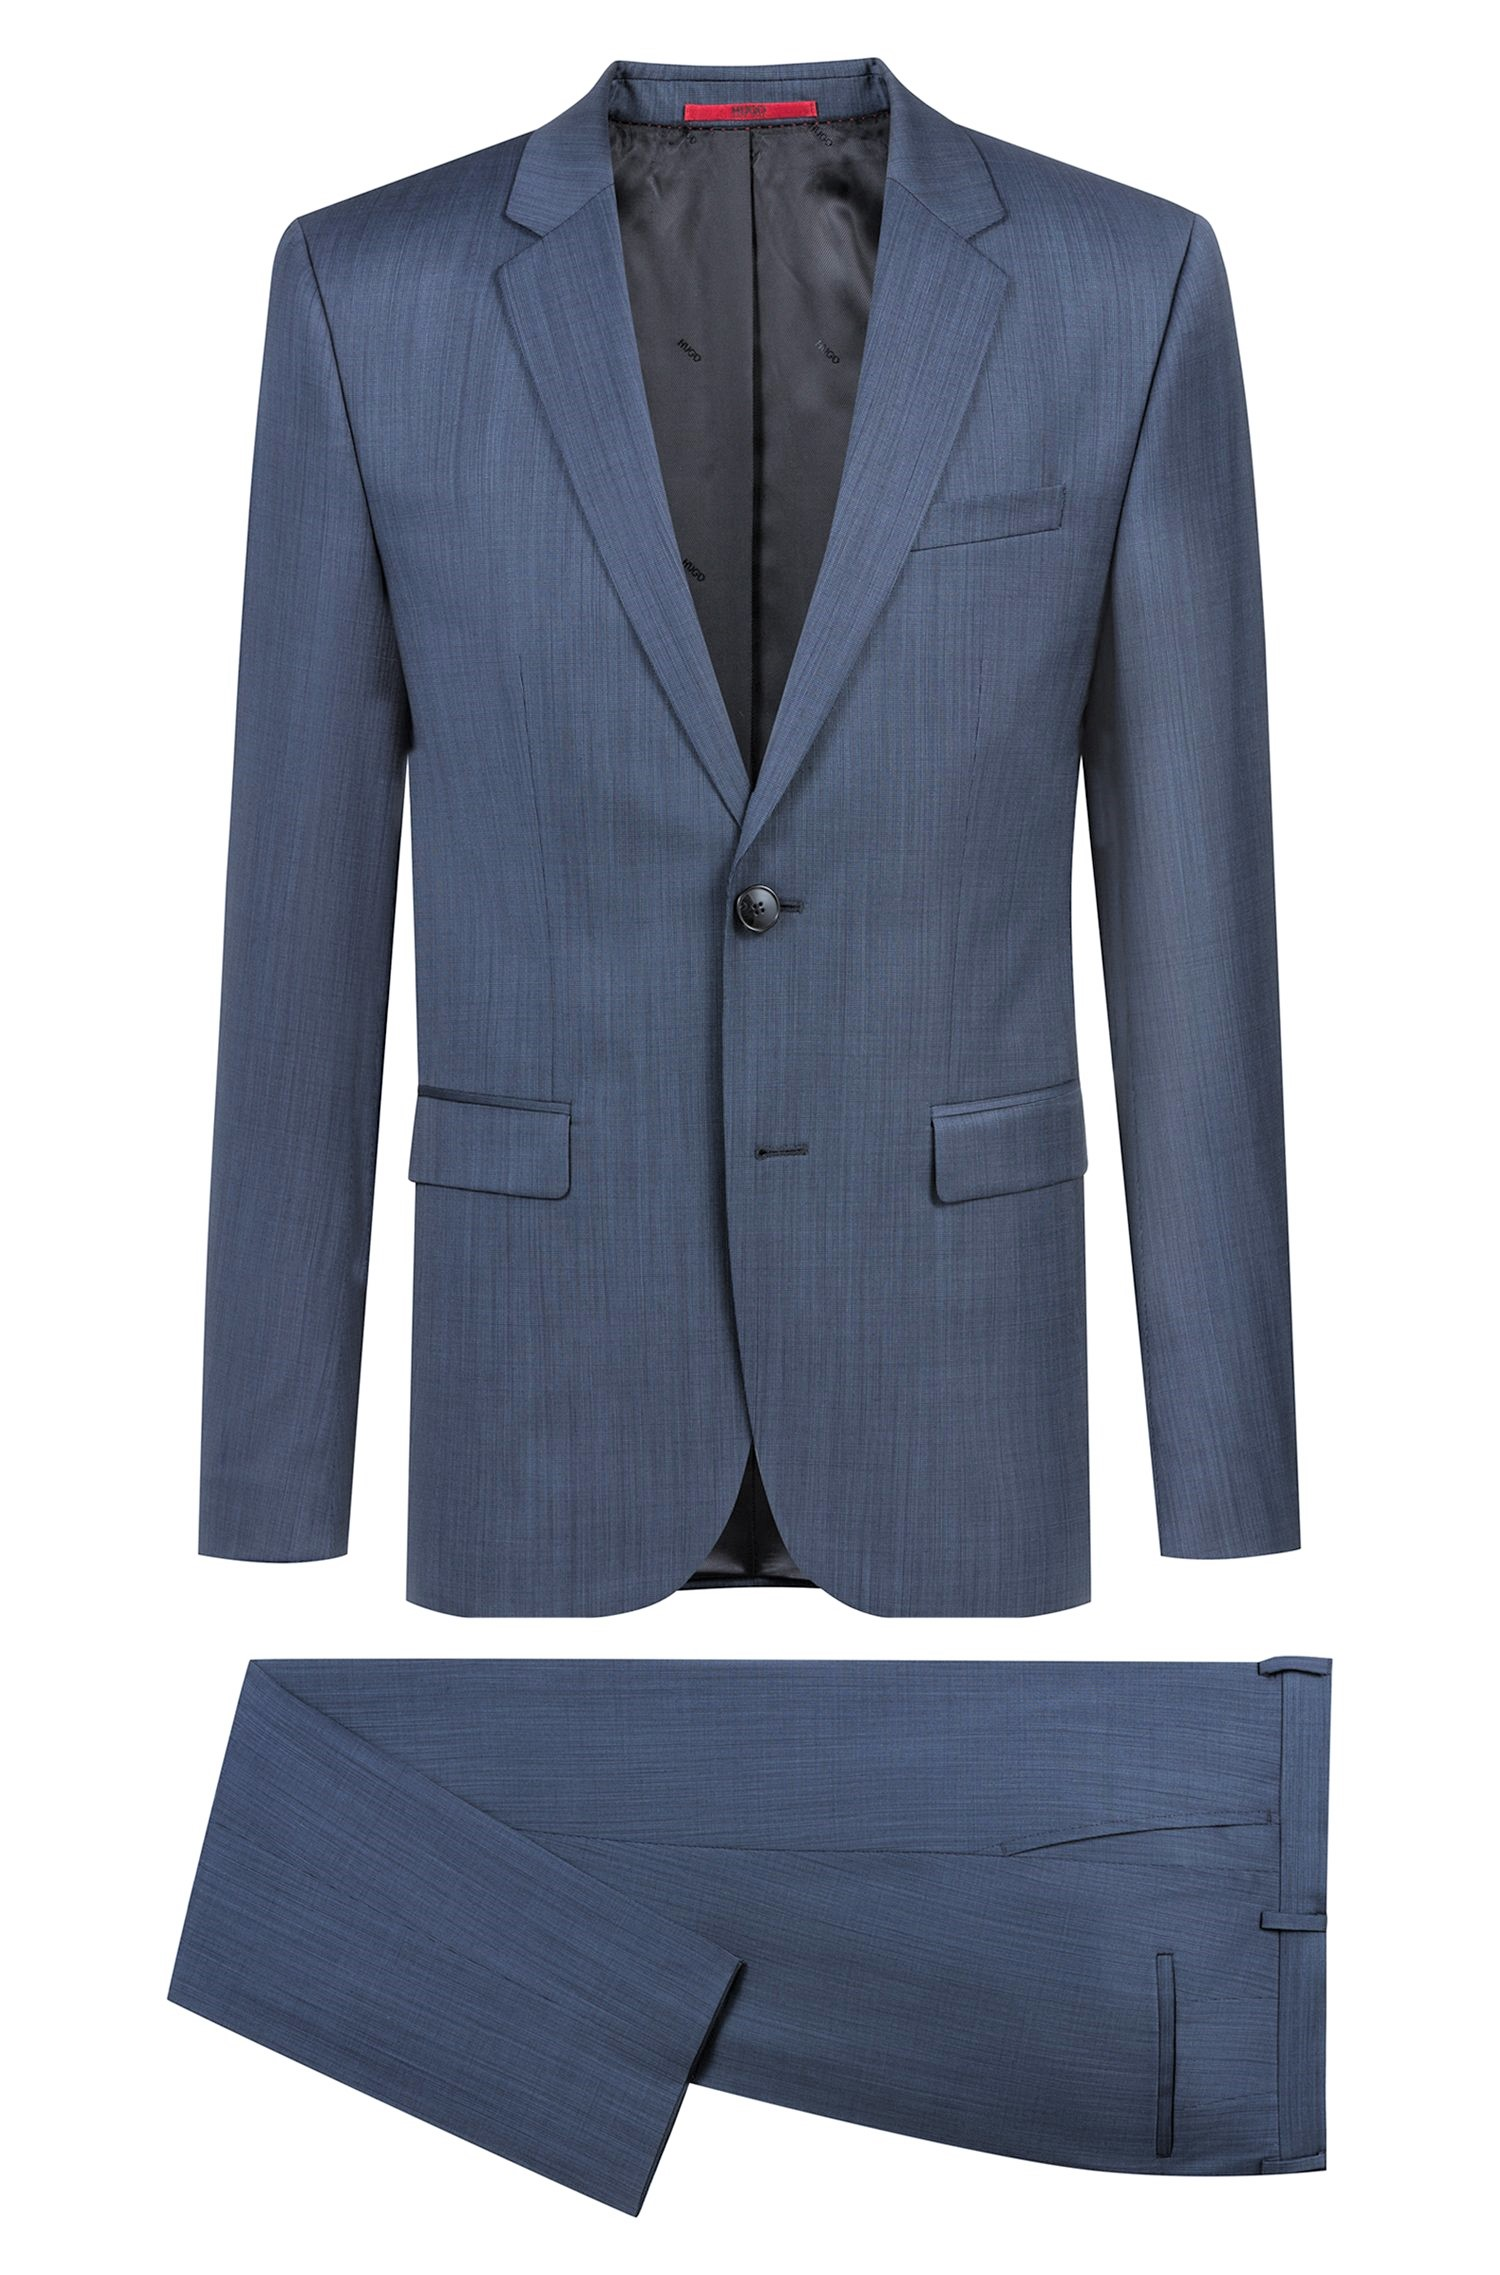 HUGO BOSS Abito extra slim fit in misto lana BLUE Astian/Hets184 50405559